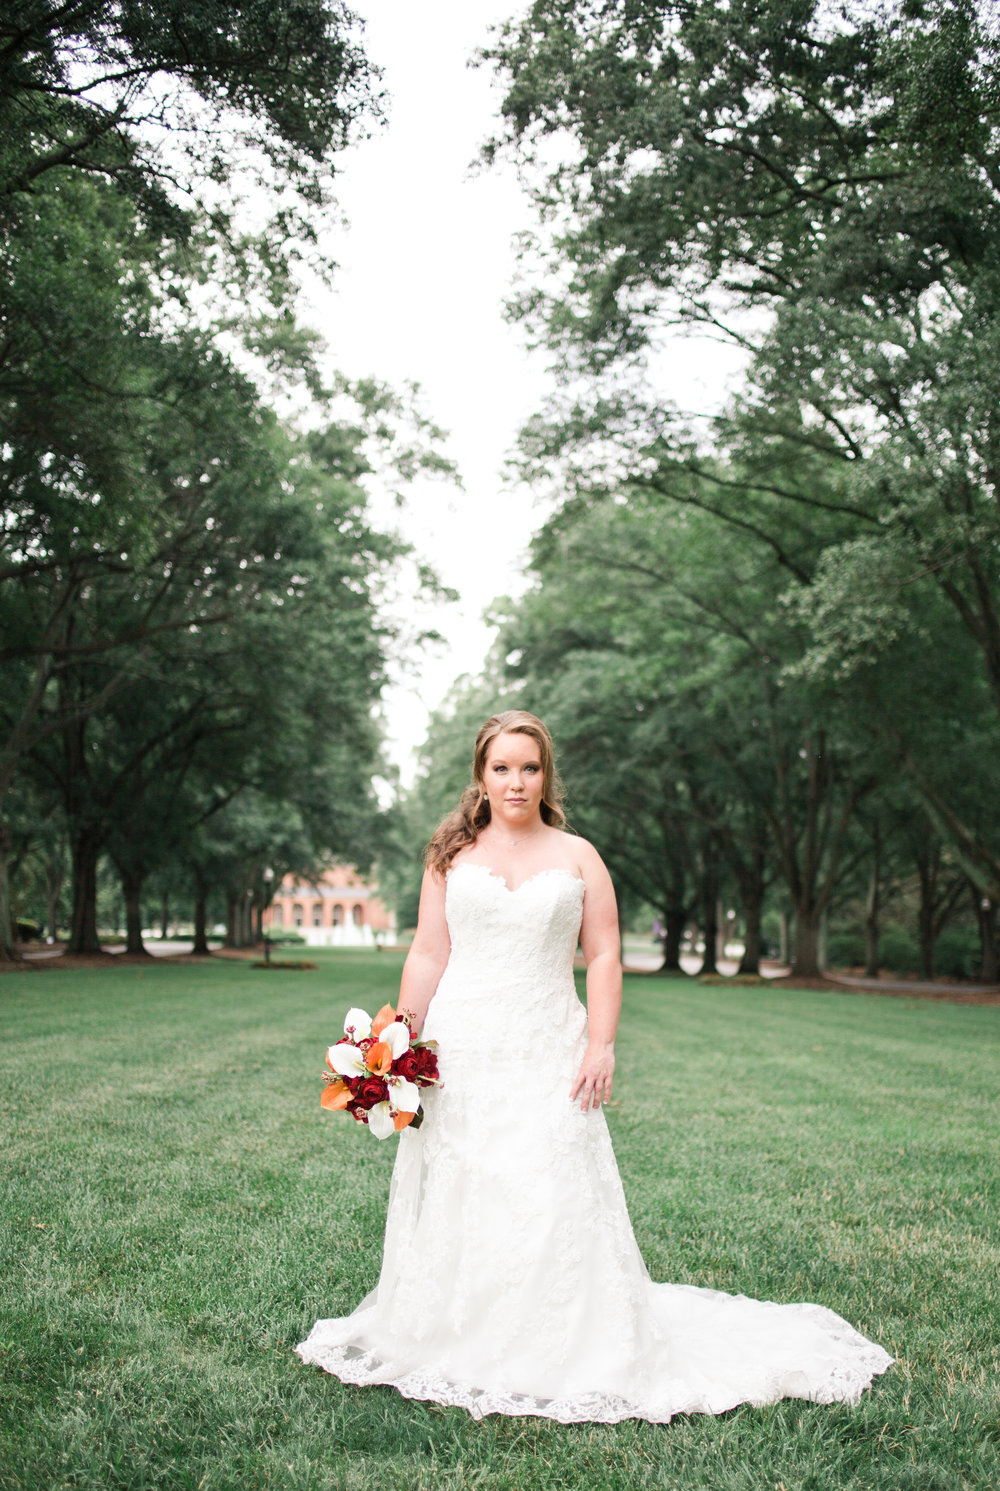 gabbie_bridal_poured_out_photography-6.jpg